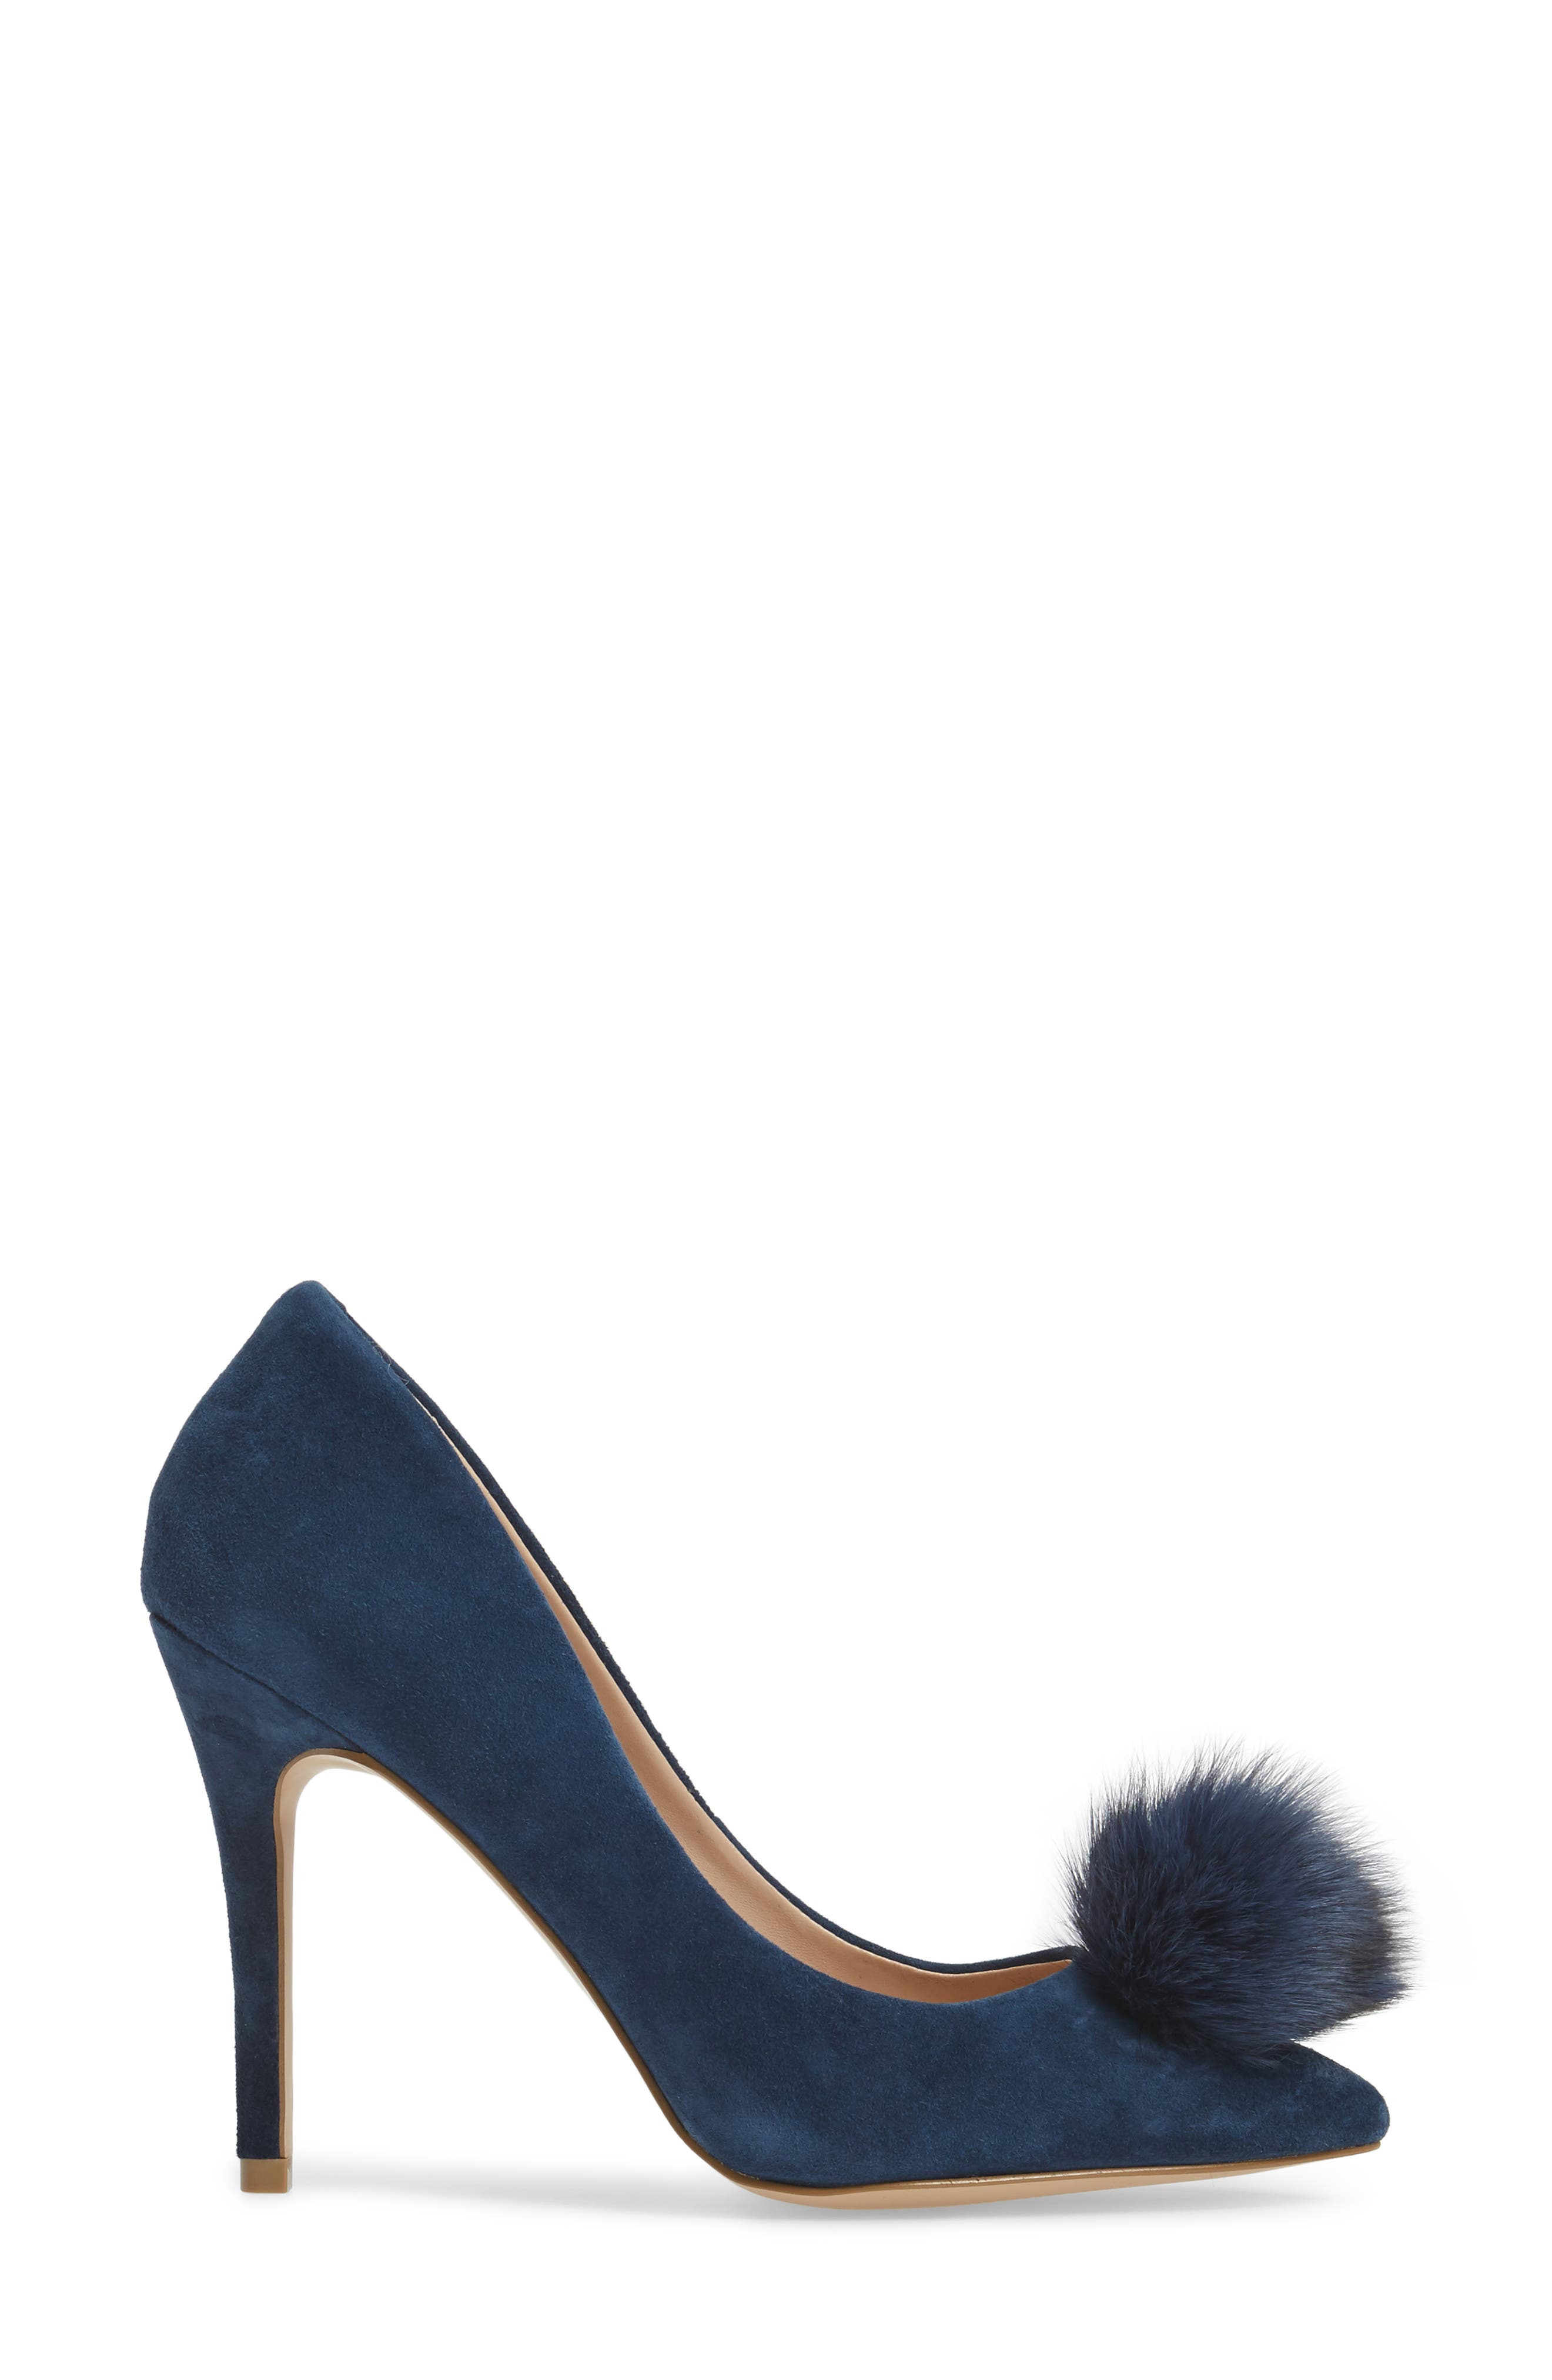 Pixie Pump with Genuine Fox Fur Pom,                             Alternate thumbnail 3, color,                             Midnight Suede